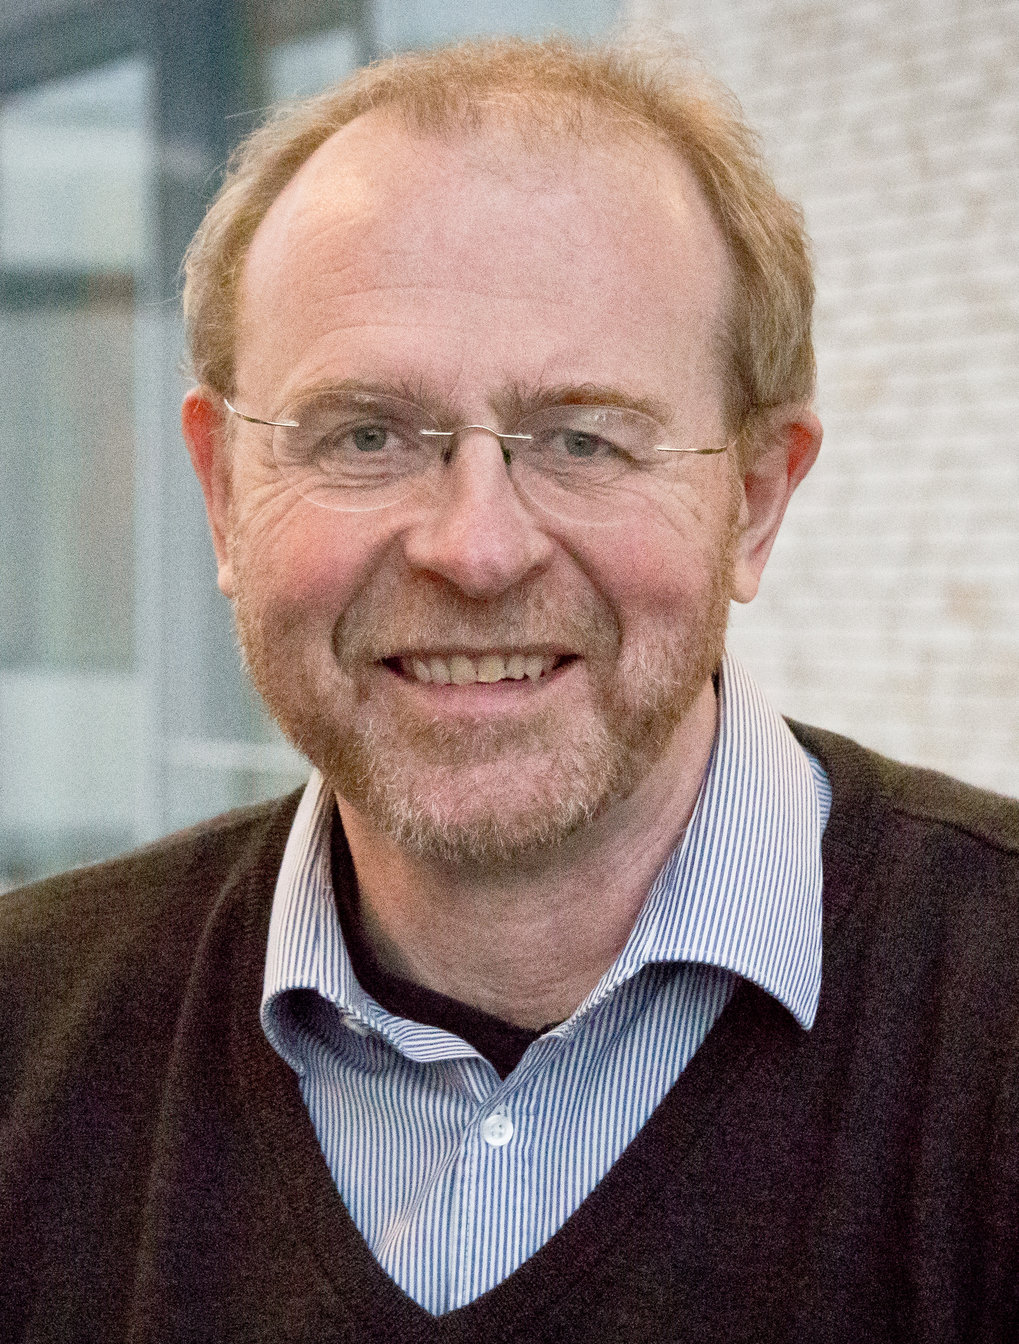 Fig. 1 Dr. Thomas Boehm, Department of Developmental Immunology, at the Max Planck Institute of Immunobiology and Epigenetics, Freiburg.